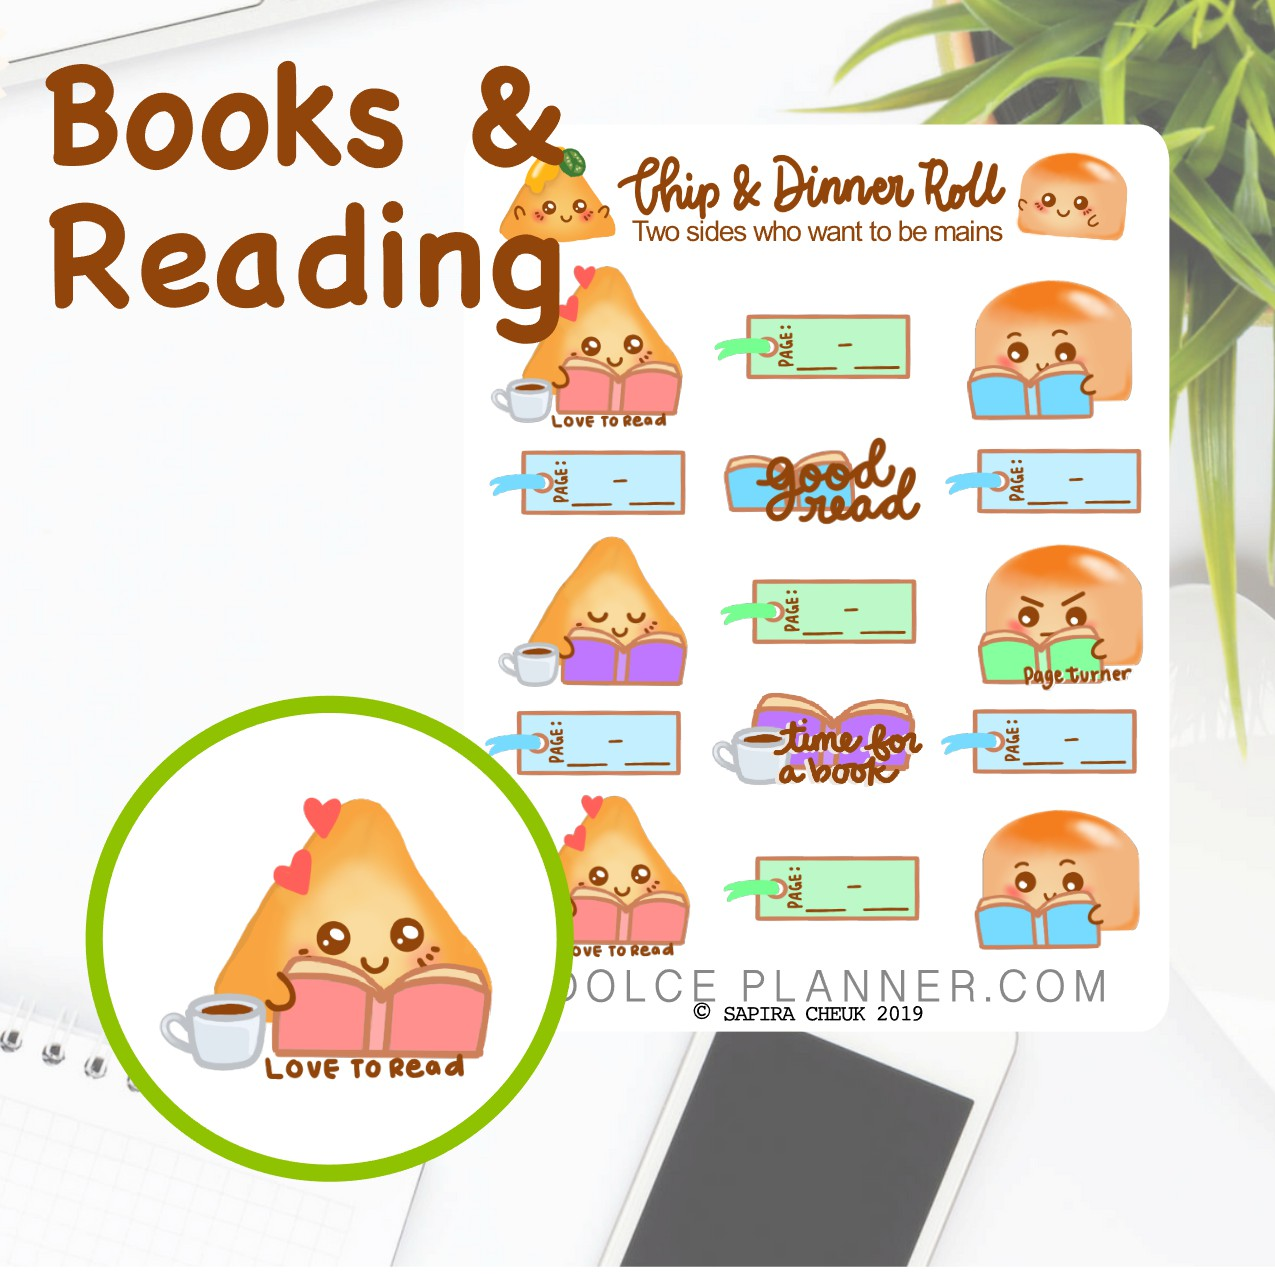 Books and Reading Chip & DInner Roll Character Planner Sticker